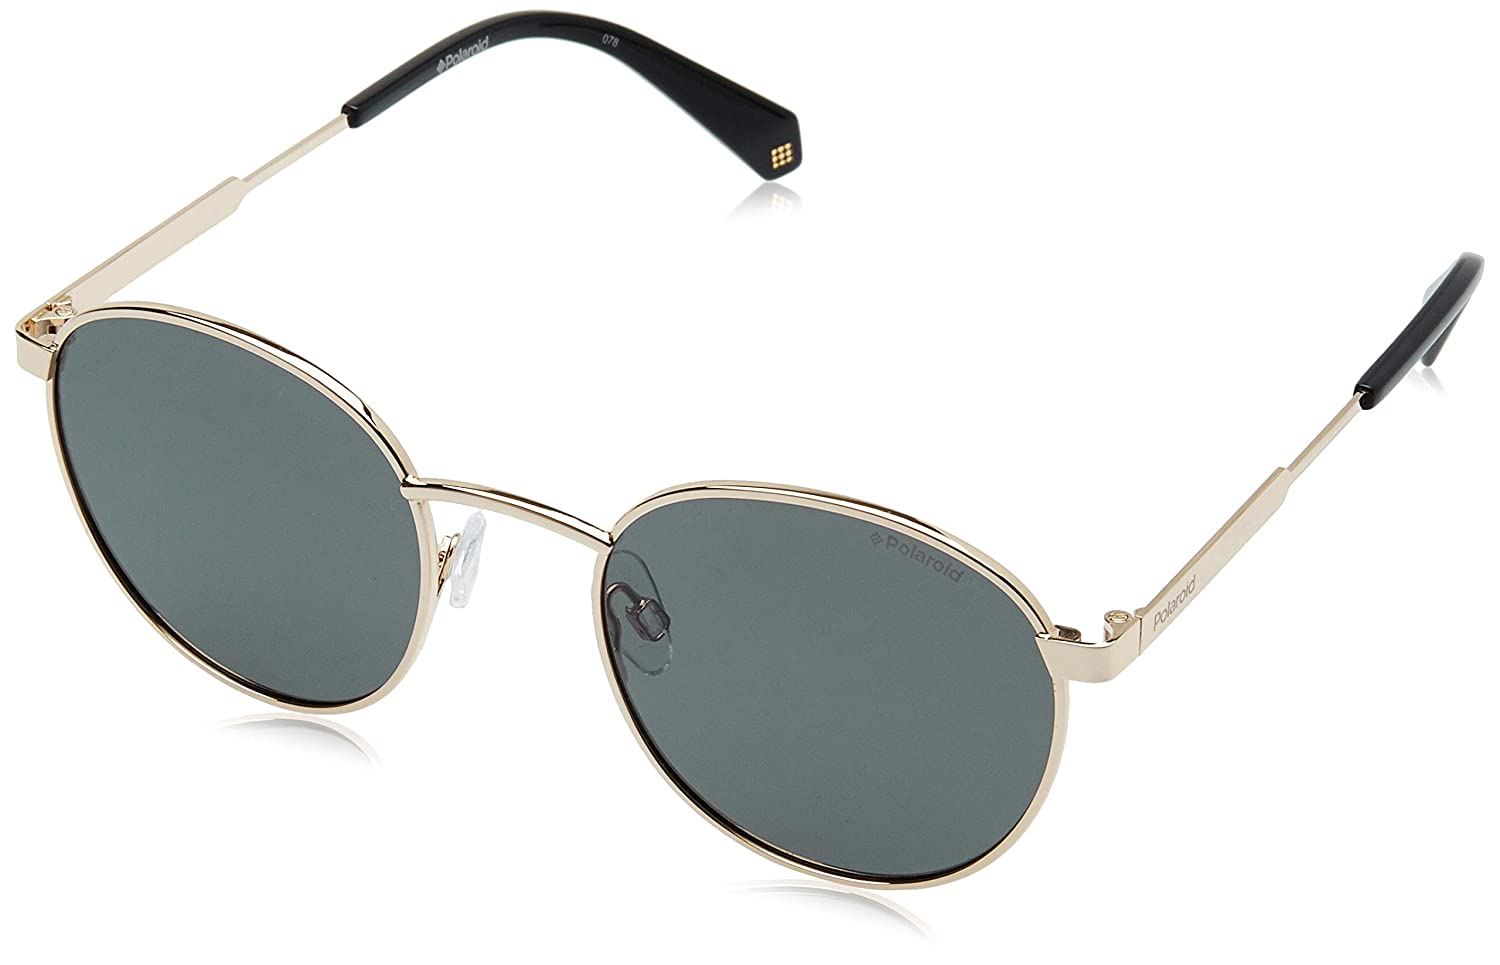 da41de95bd Amazon.com  Polaroid PLD2053 S 2F7 Antique Gold PLD2053 S Round Sunglasses  Polarised Lens C  Clothing